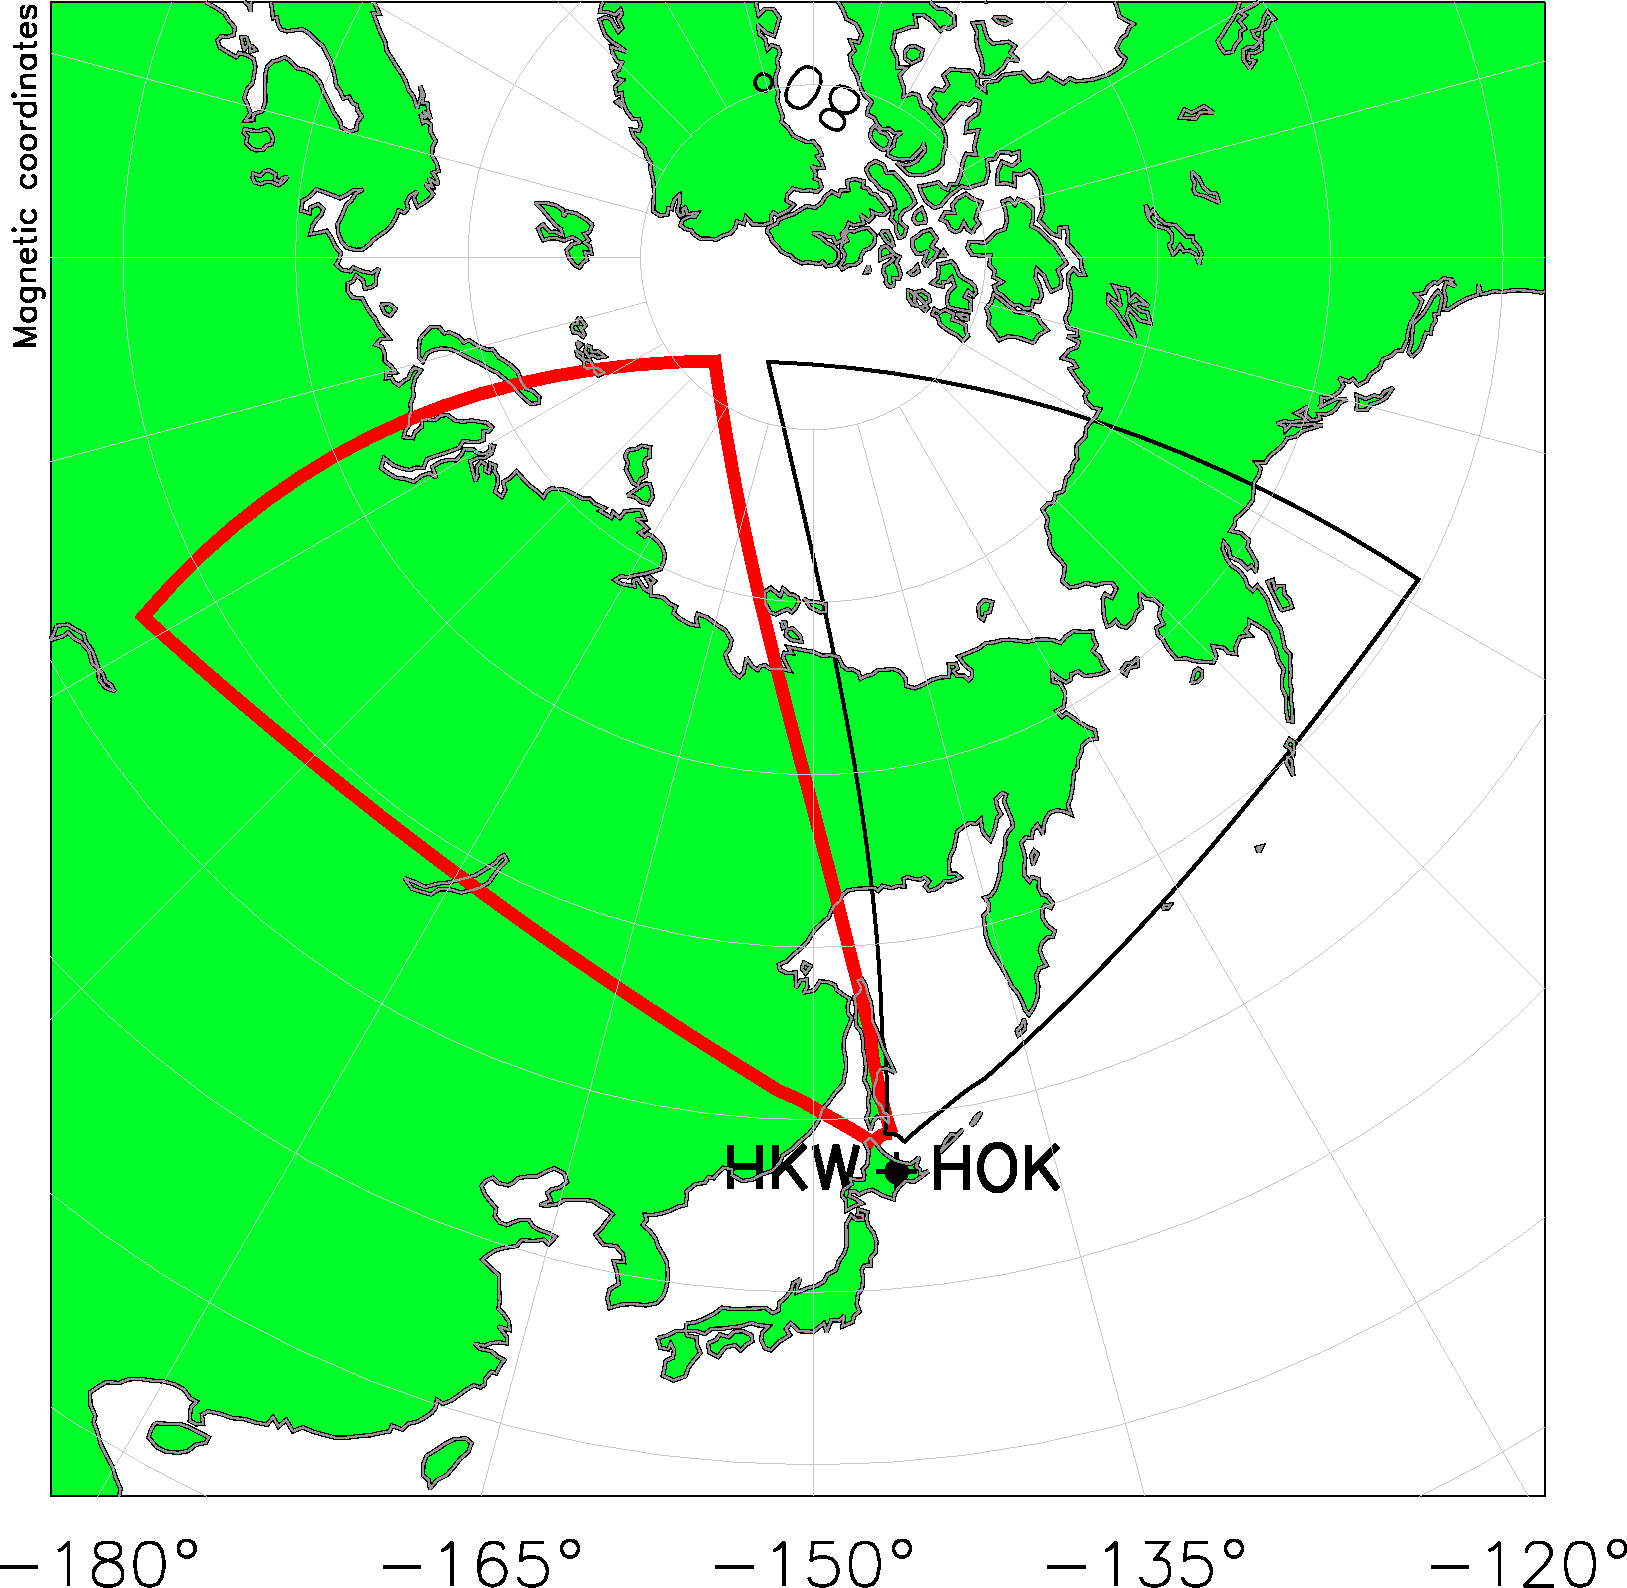 Hokkaido West Radar Field of View Map